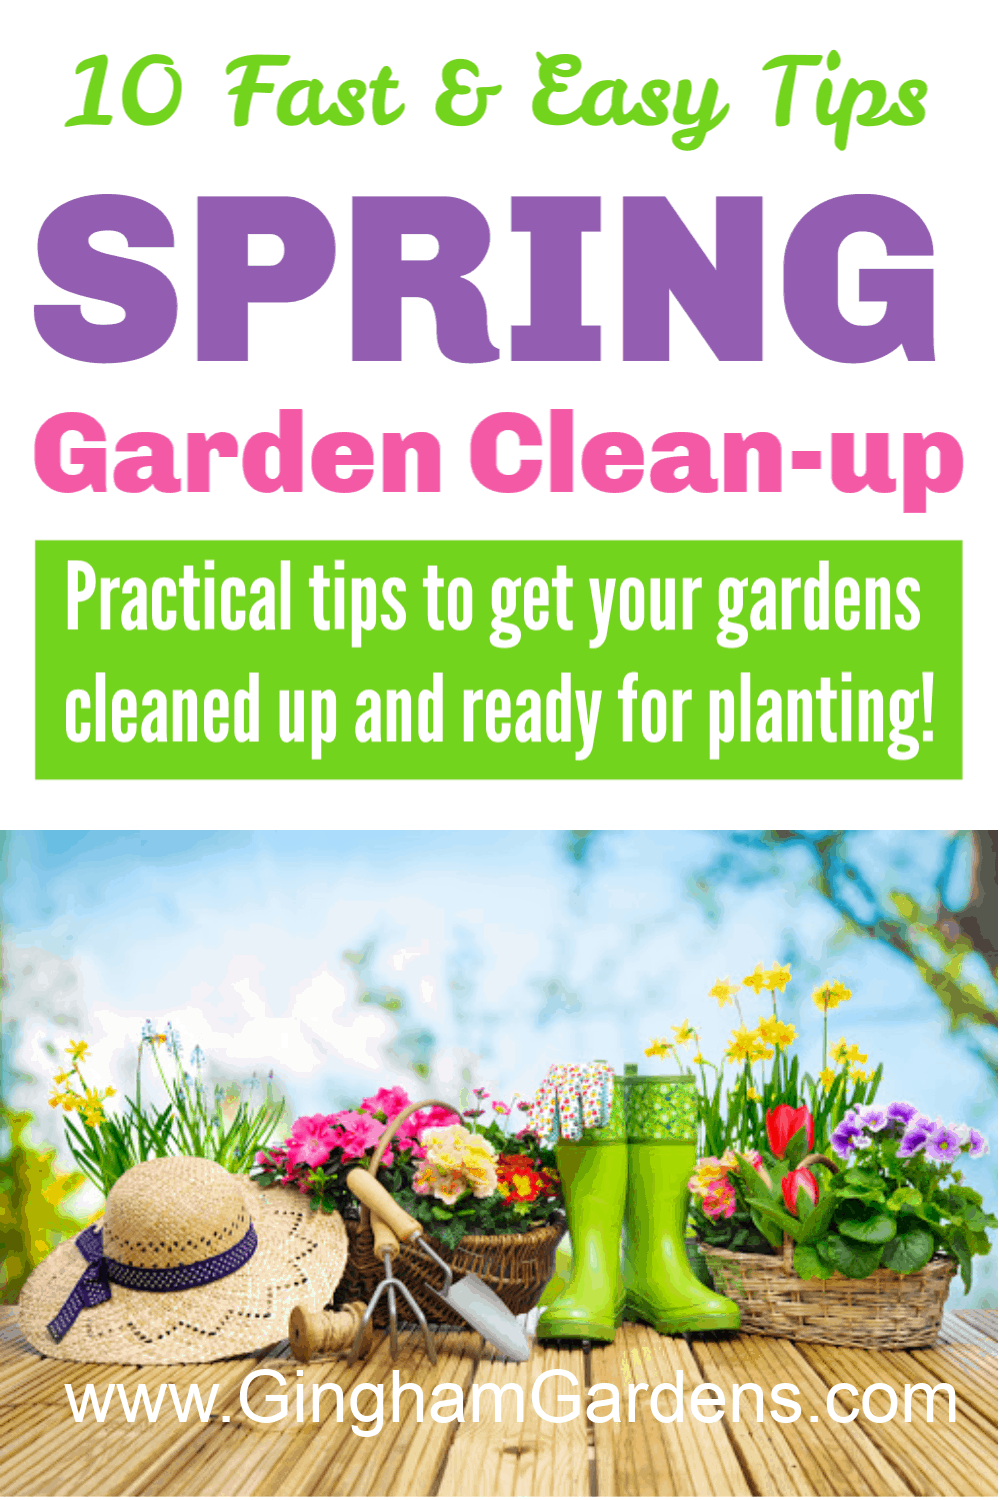 Image of Gardening Gear with Text Overlay - 10 Fast & Easy Tips for spring garden clean-up